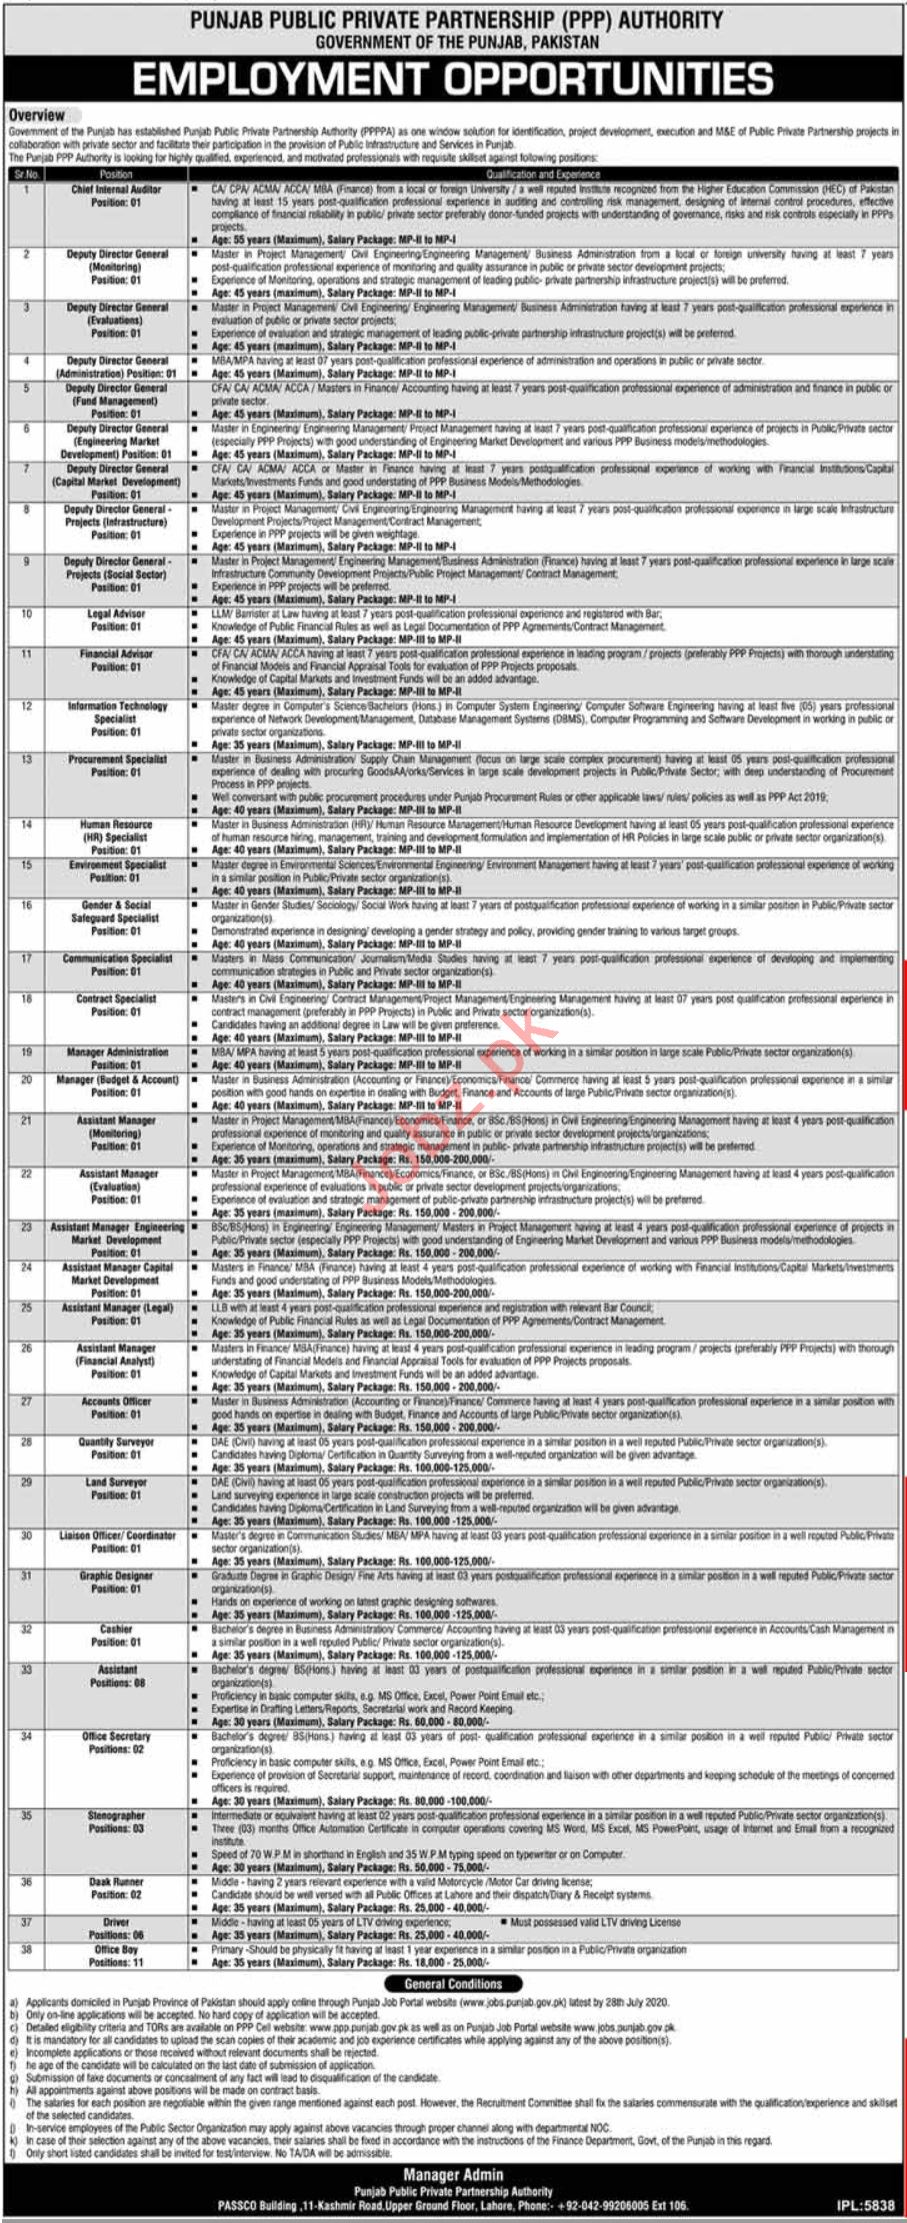 Public Private Partnership Authority PPPA Jobs for Directors